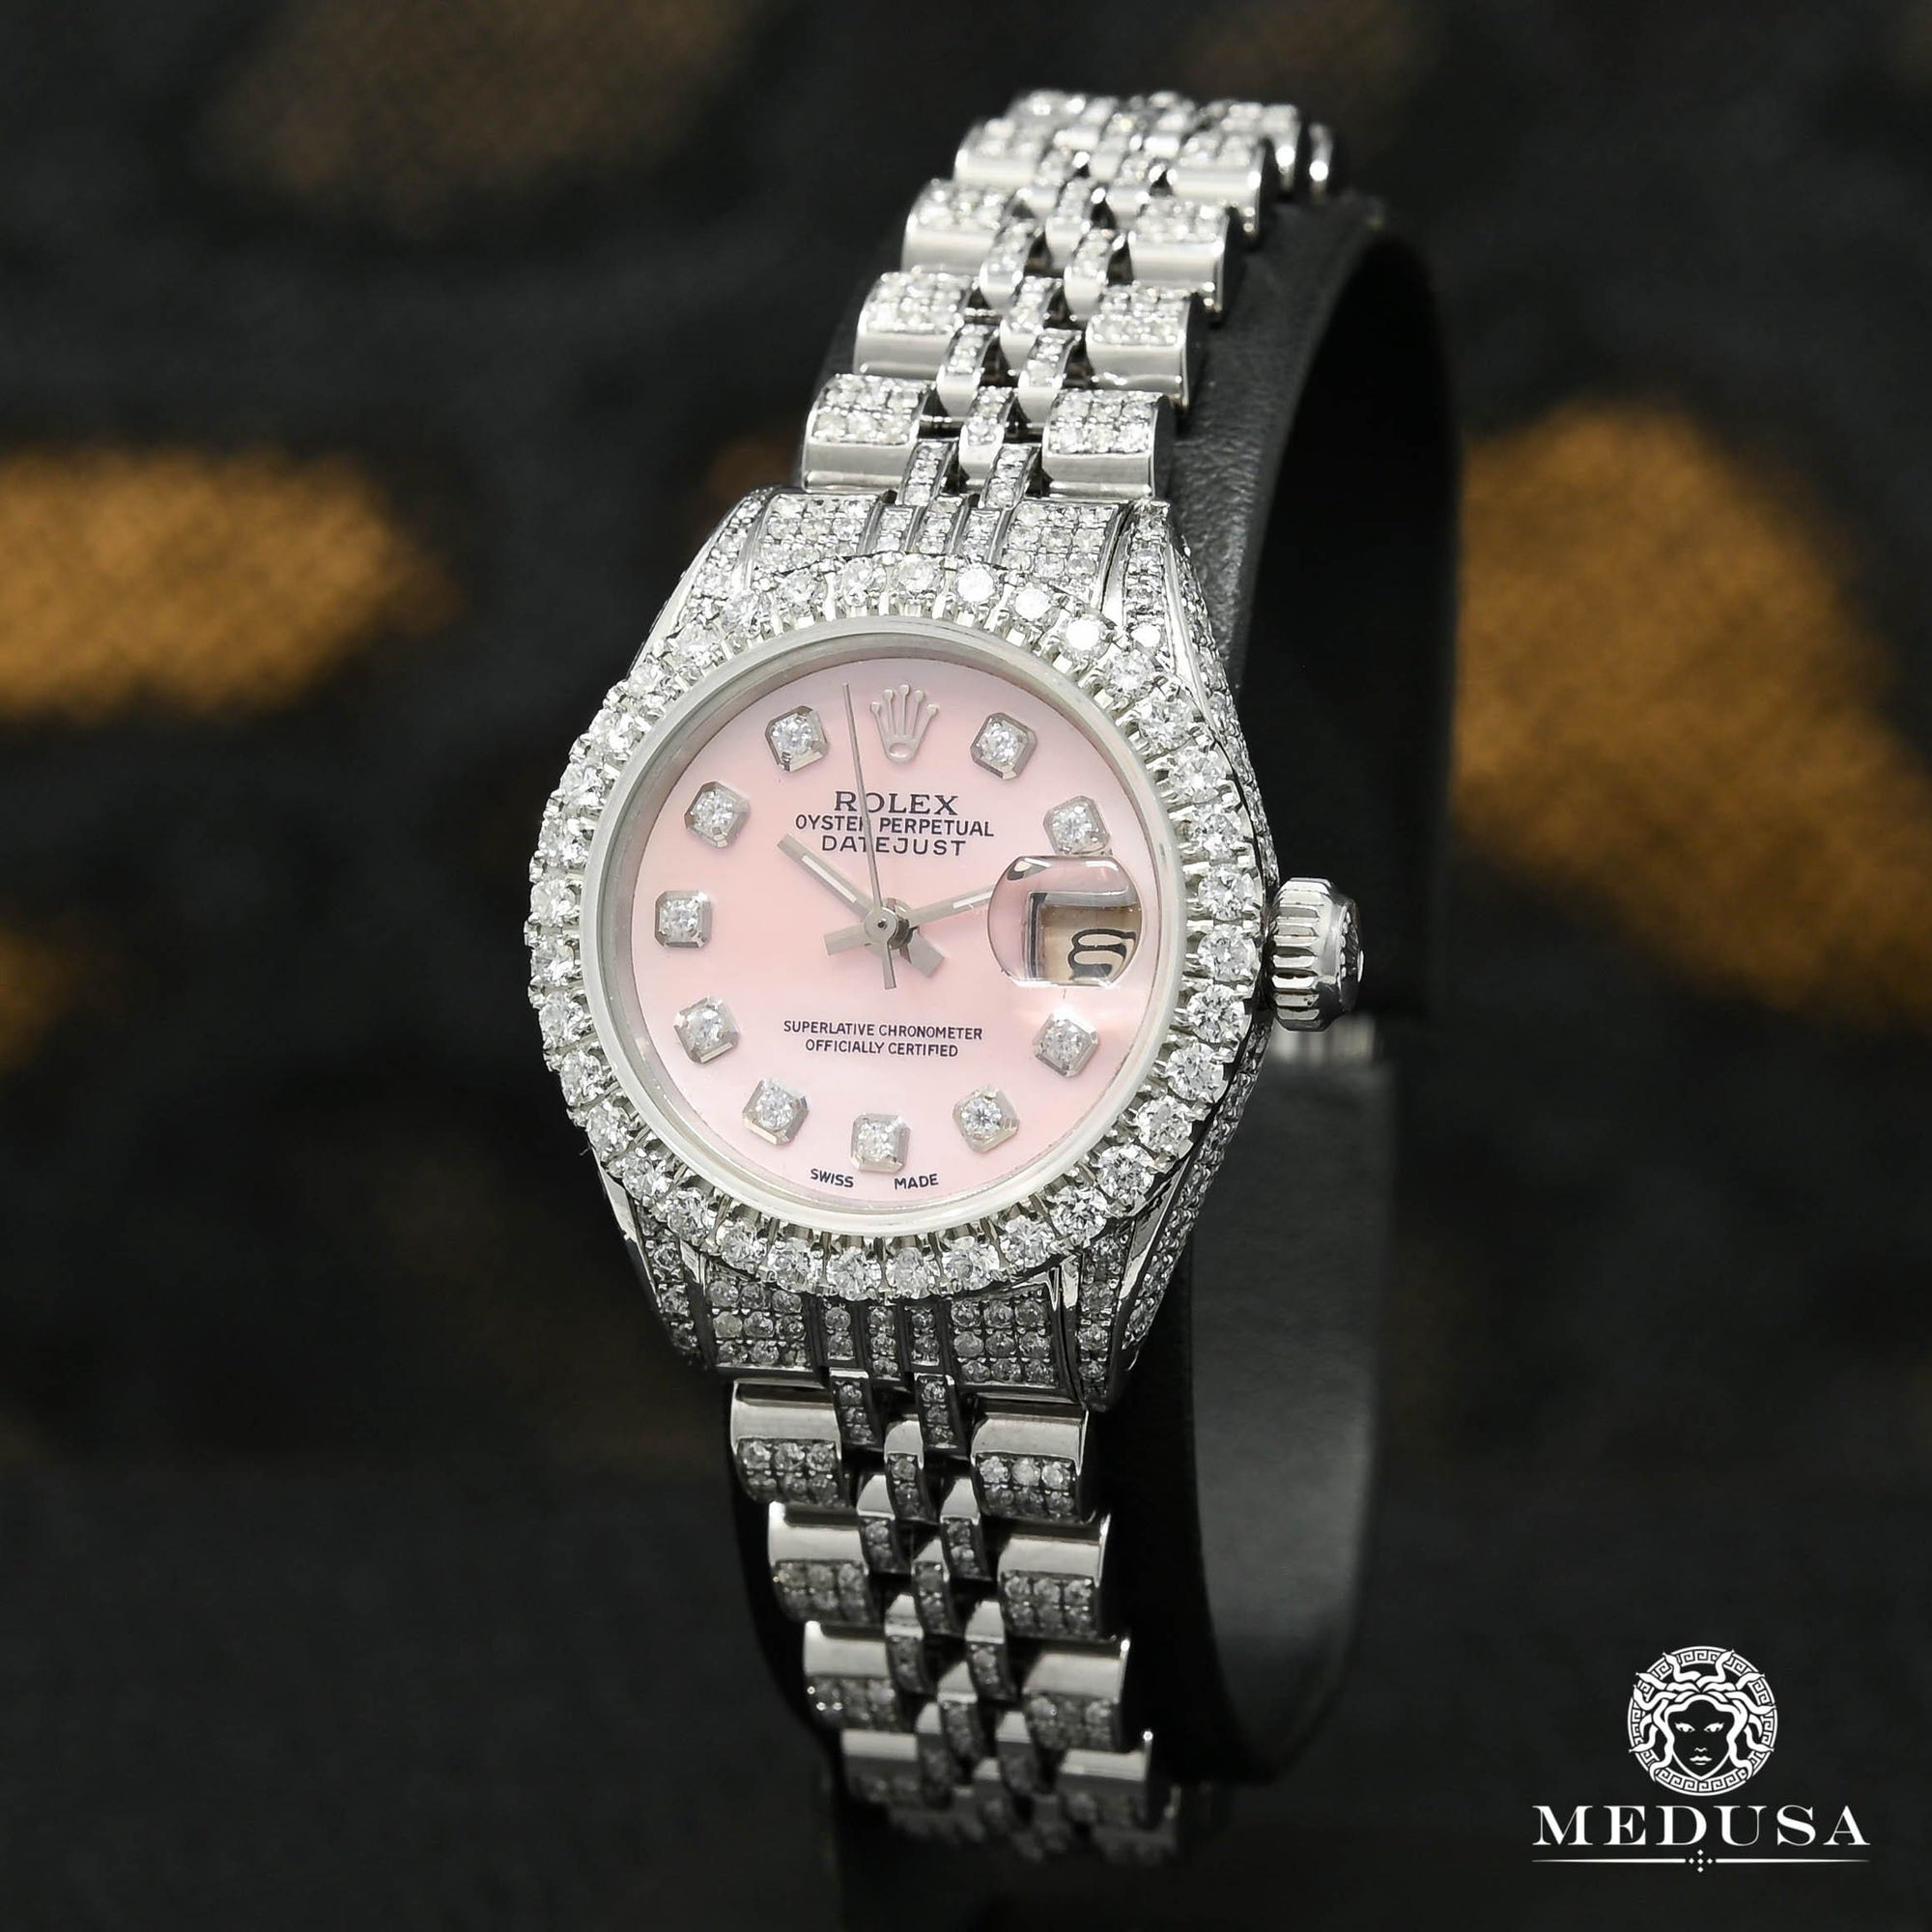 Rolex watch | Rolex Datejust 26mm Woman Watch - Pink Stainless Iced Stainless